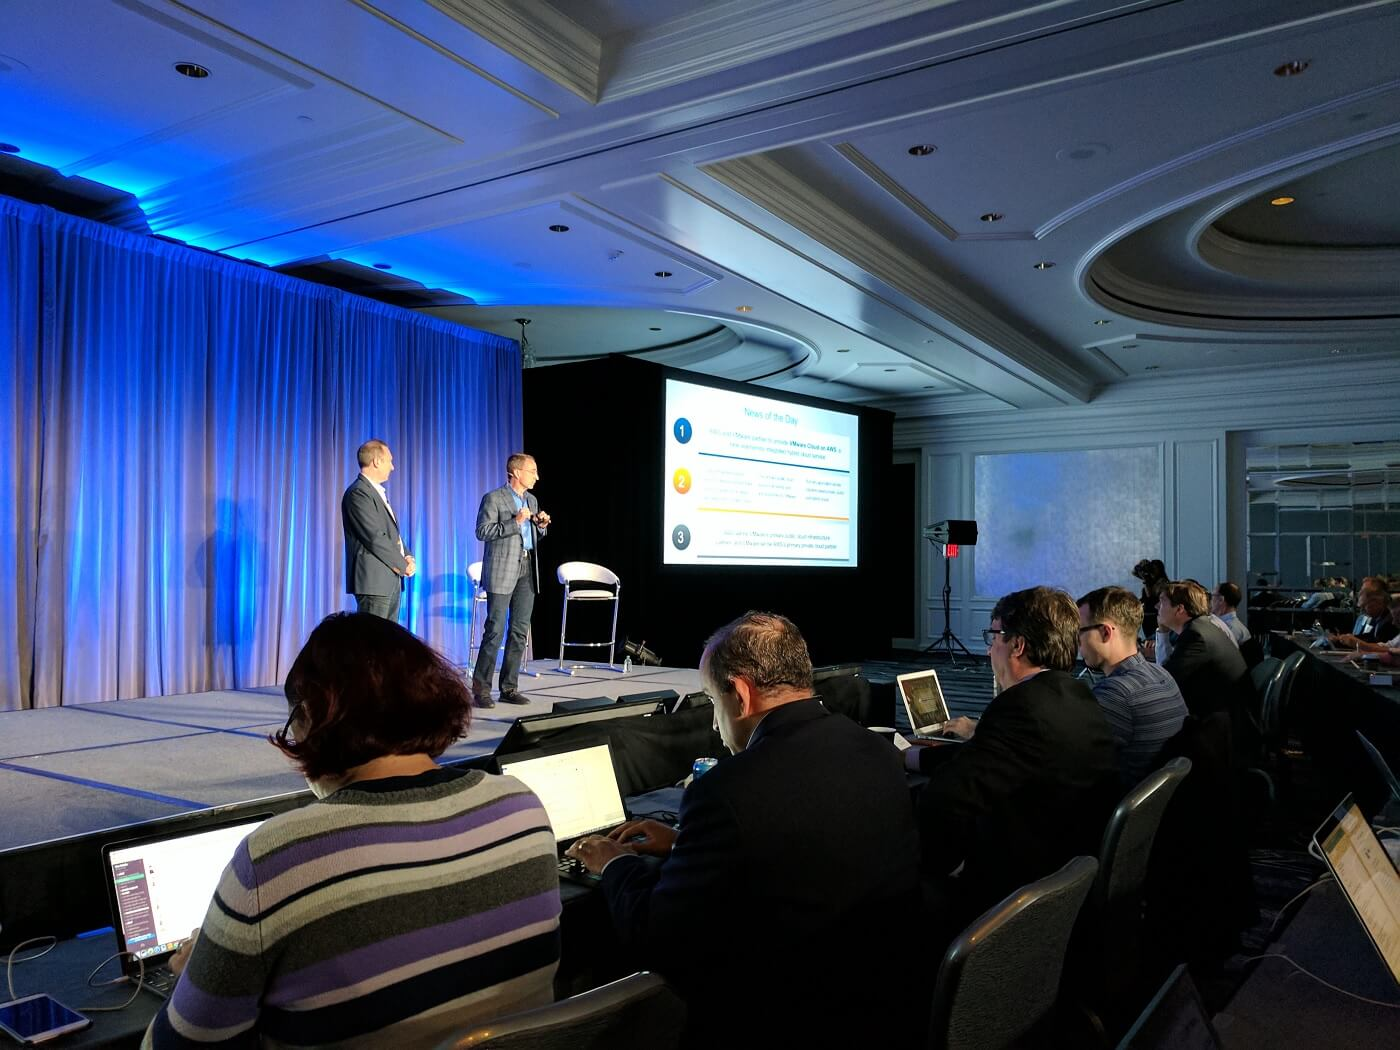 VMware launches new cloud offerings